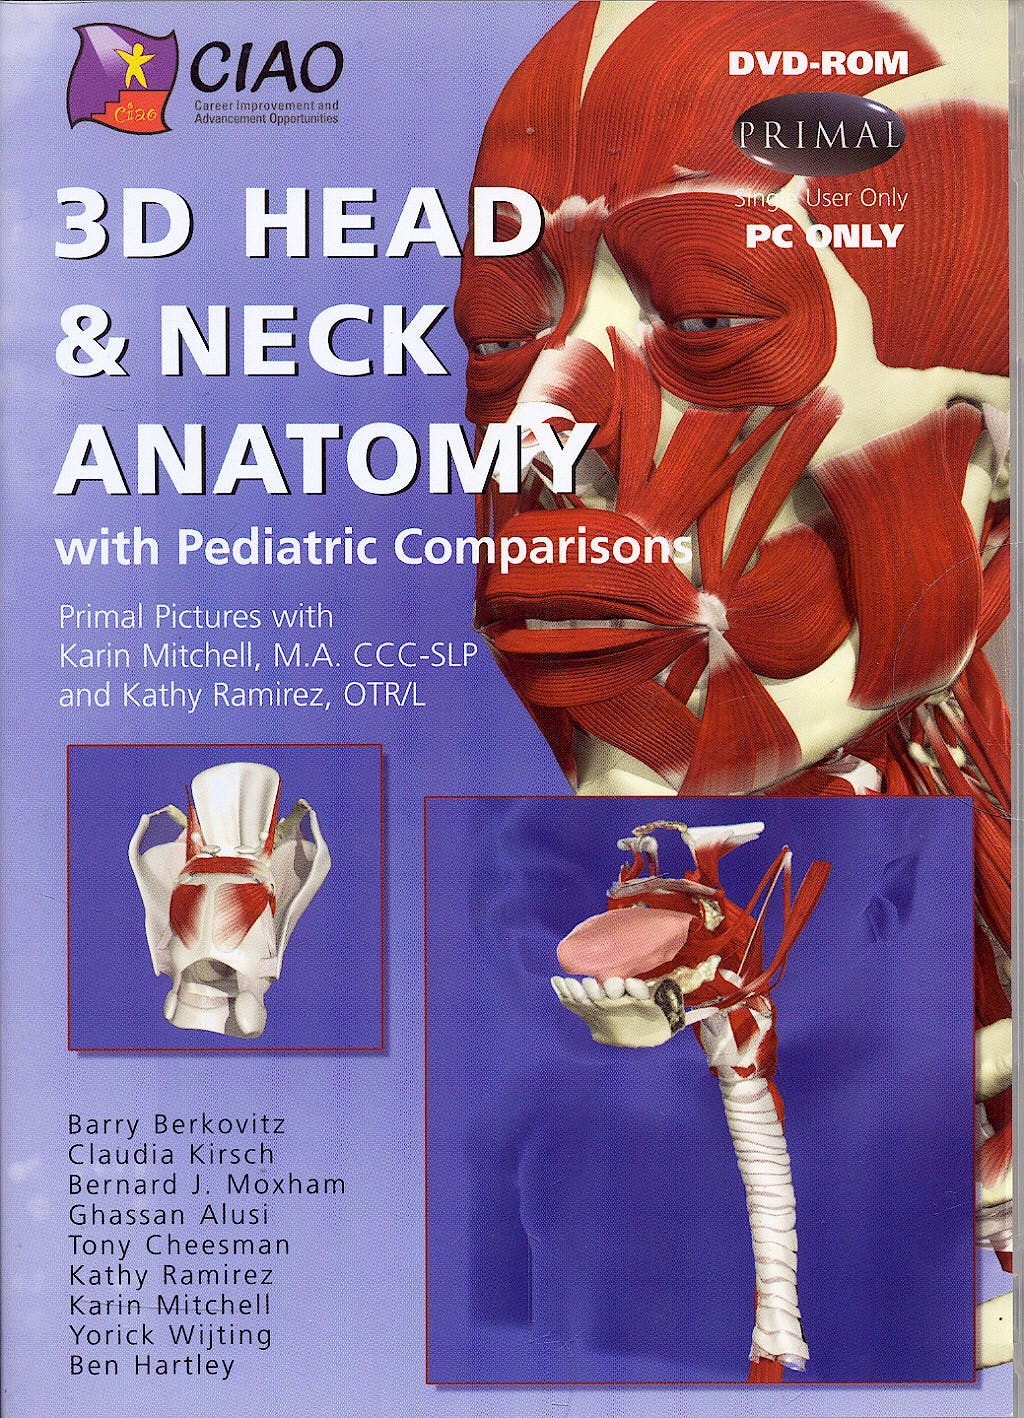 3D Head and Neck Anatomy with Pediatric Comparisons (DVD-ROM)